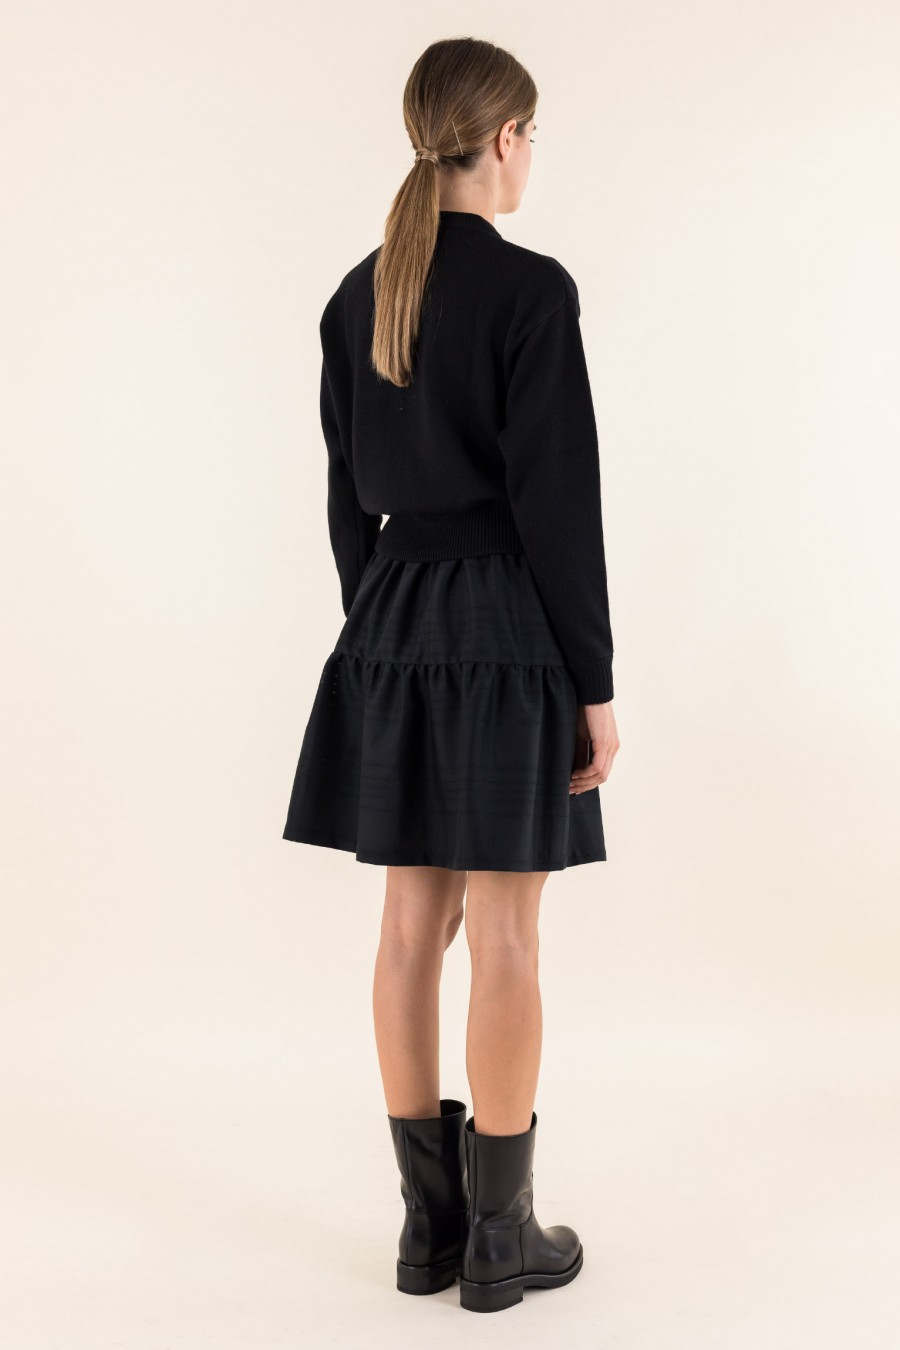 Black jumper with wide sleeves